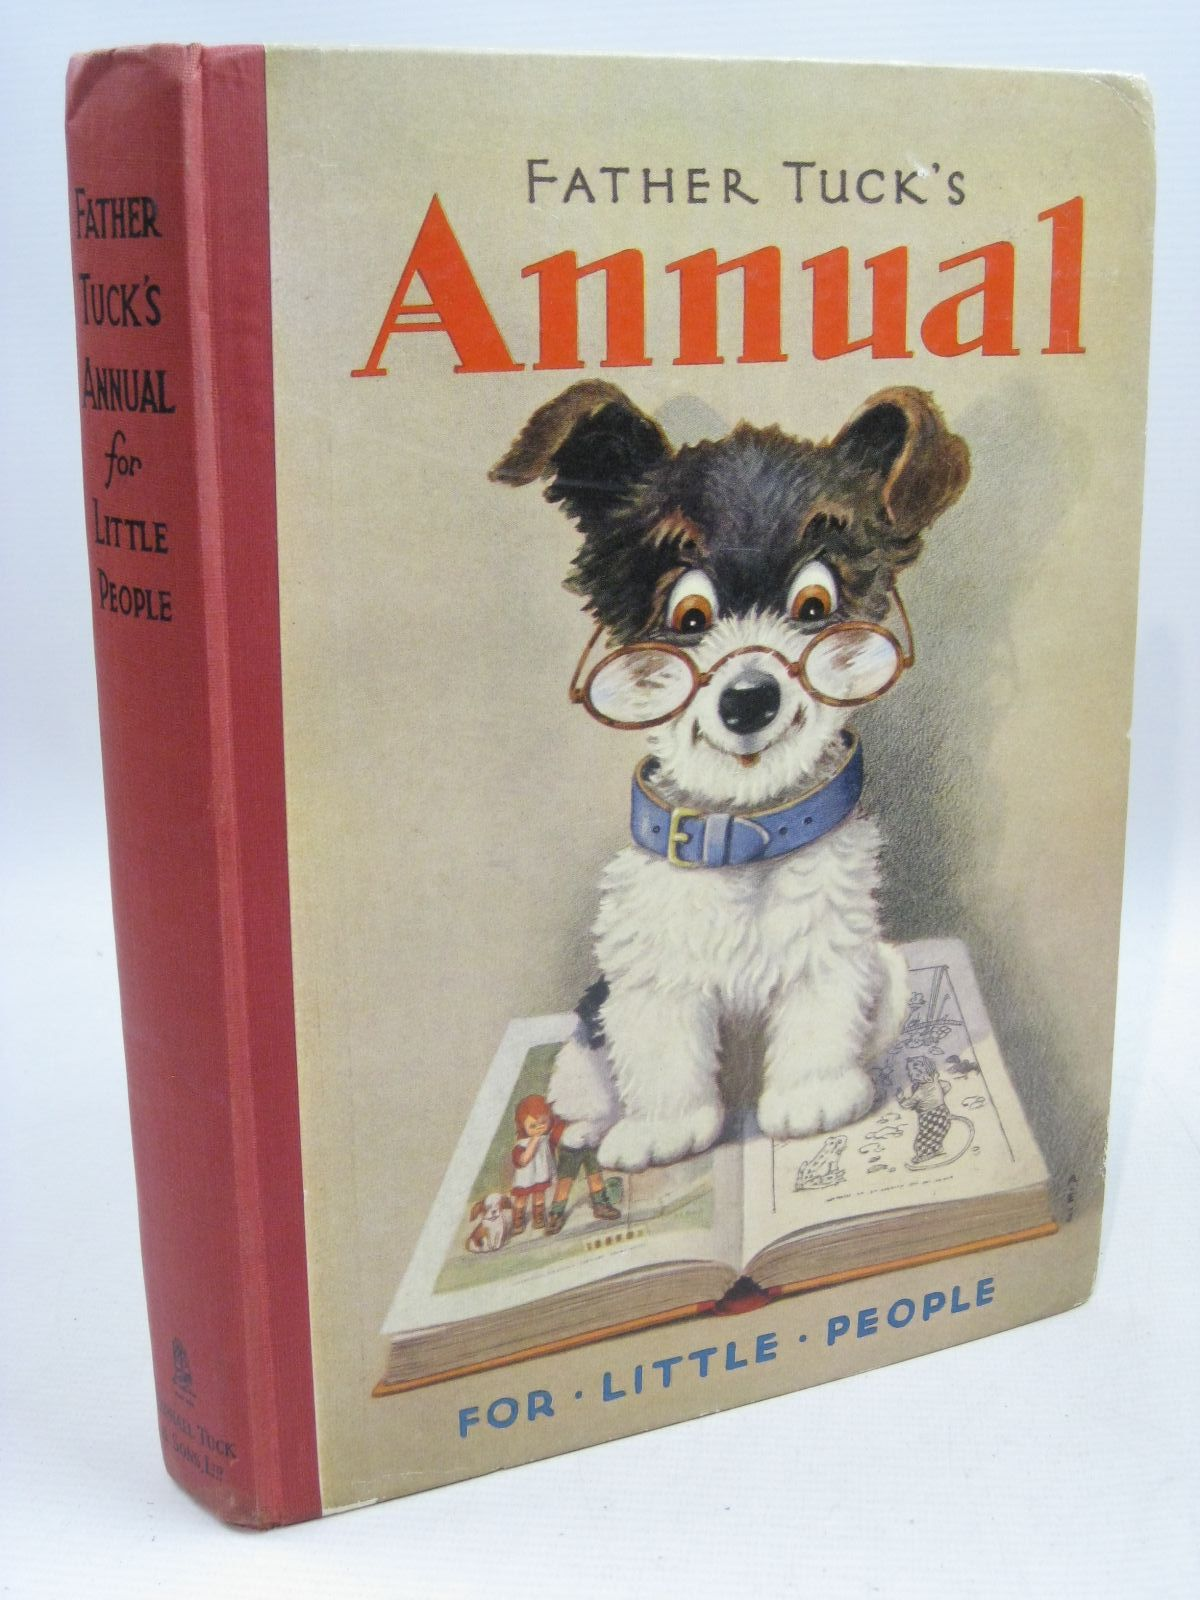 Photo of FATHER TUCK'S ANNUAL FOR LITTLE PEOPLE - 16TH YEAR written by Rutley, Cecily M. Slade, Gurney Rhodes, Margaret et al, illustrated by Robinson, Gordon Mallet, Beatrice Cloke, Rene et al., published by Raphael Tuck & Sons Ltd. (STOCK CODE: 1315556)  for sale by Stella & Rose's Books